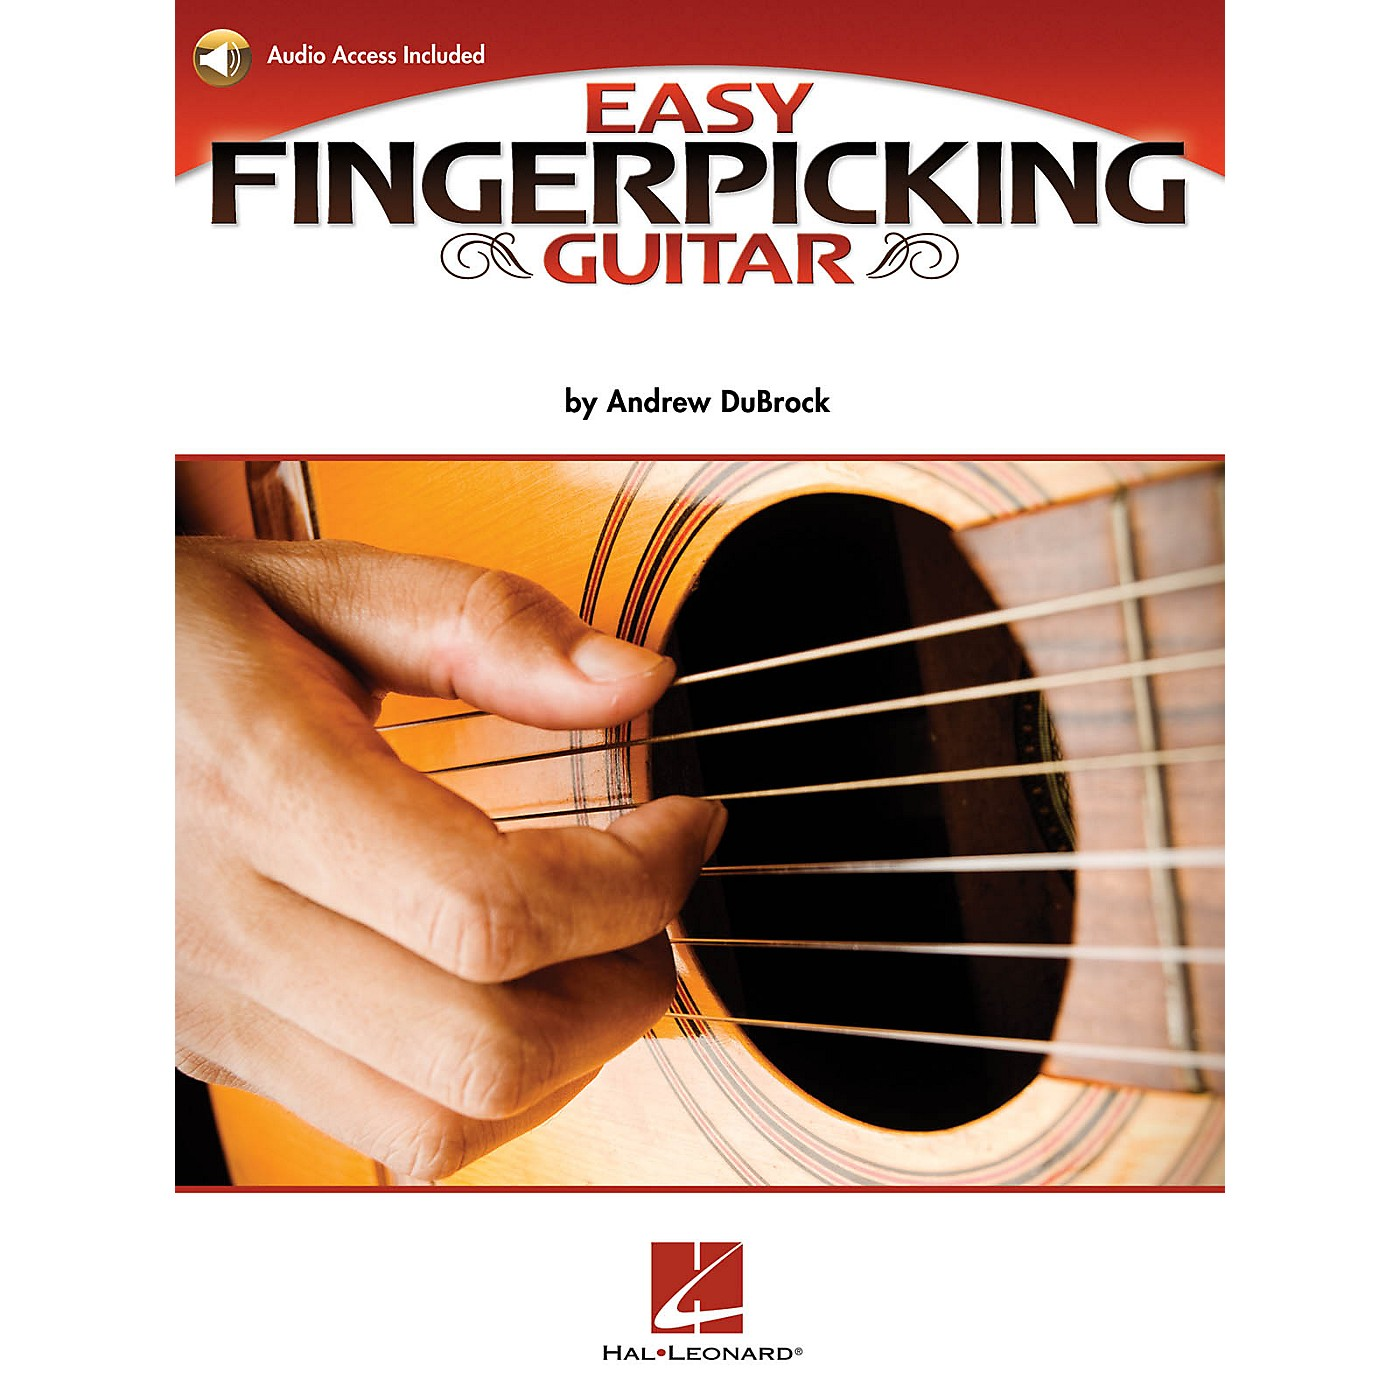 Hal Leonard Easy Fingerpicking Guitar Guitar Educational Series Softcover Audio Online Written by Andrew DuBrock thumbnail